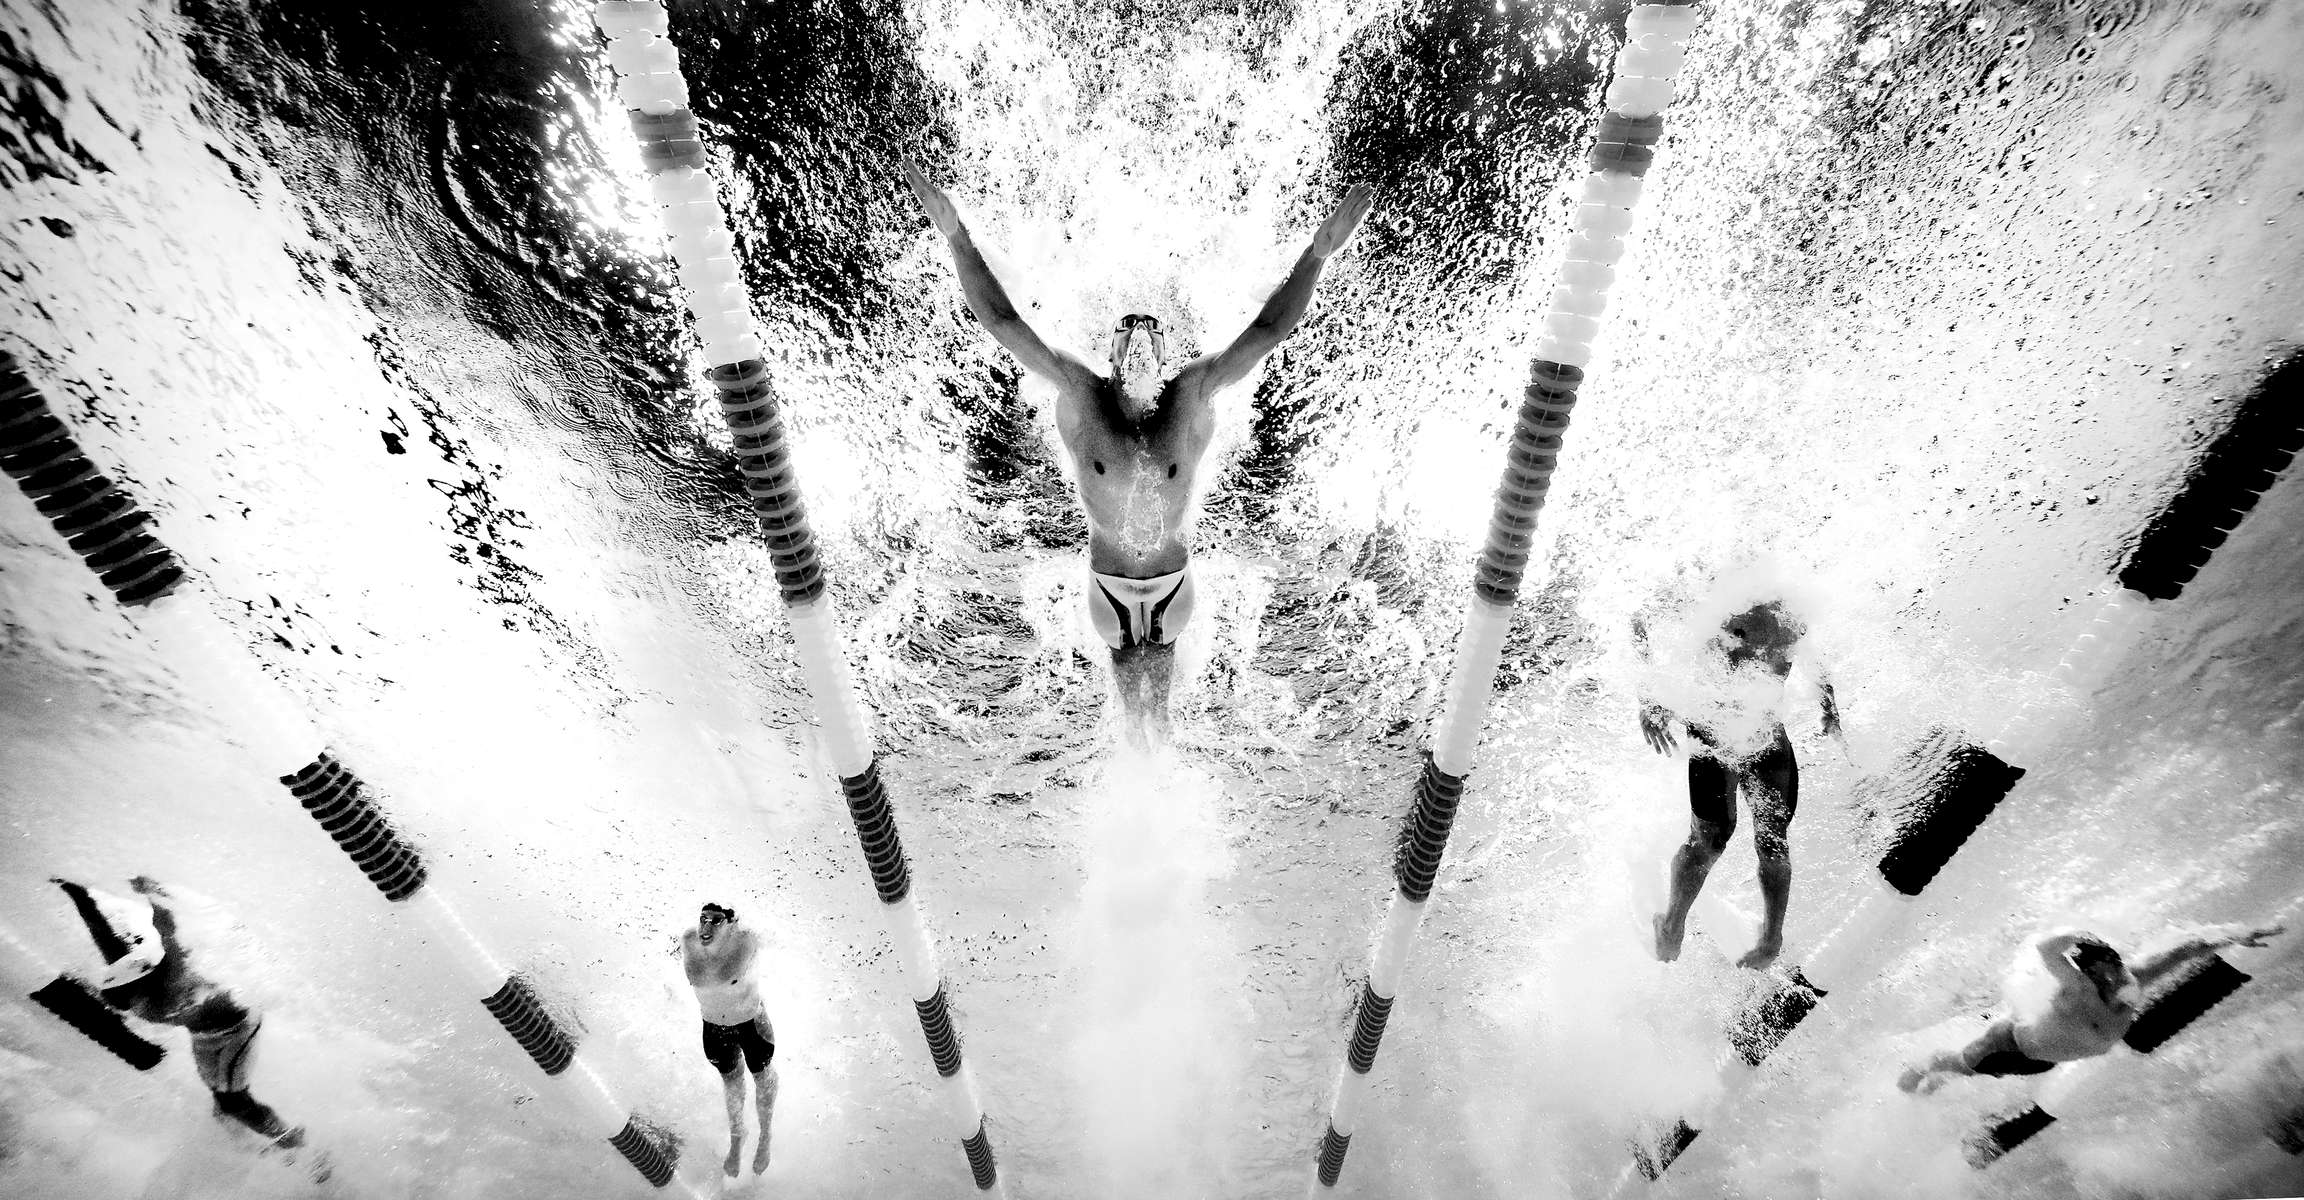 OMAHA, NE - JUNE 29:  (Editors Note: This image has been converted to black and white) Michael Phelps of the United States competes in the final heat for the Men's 200 Meter Butterfly during Day Four of the 2016 U.S. Olympic Team Swimming Trials at CenturyLink Center on June 29, 2016 in Omaha, Nebraska.  (Photo by Tom Pennington/Getty Images)